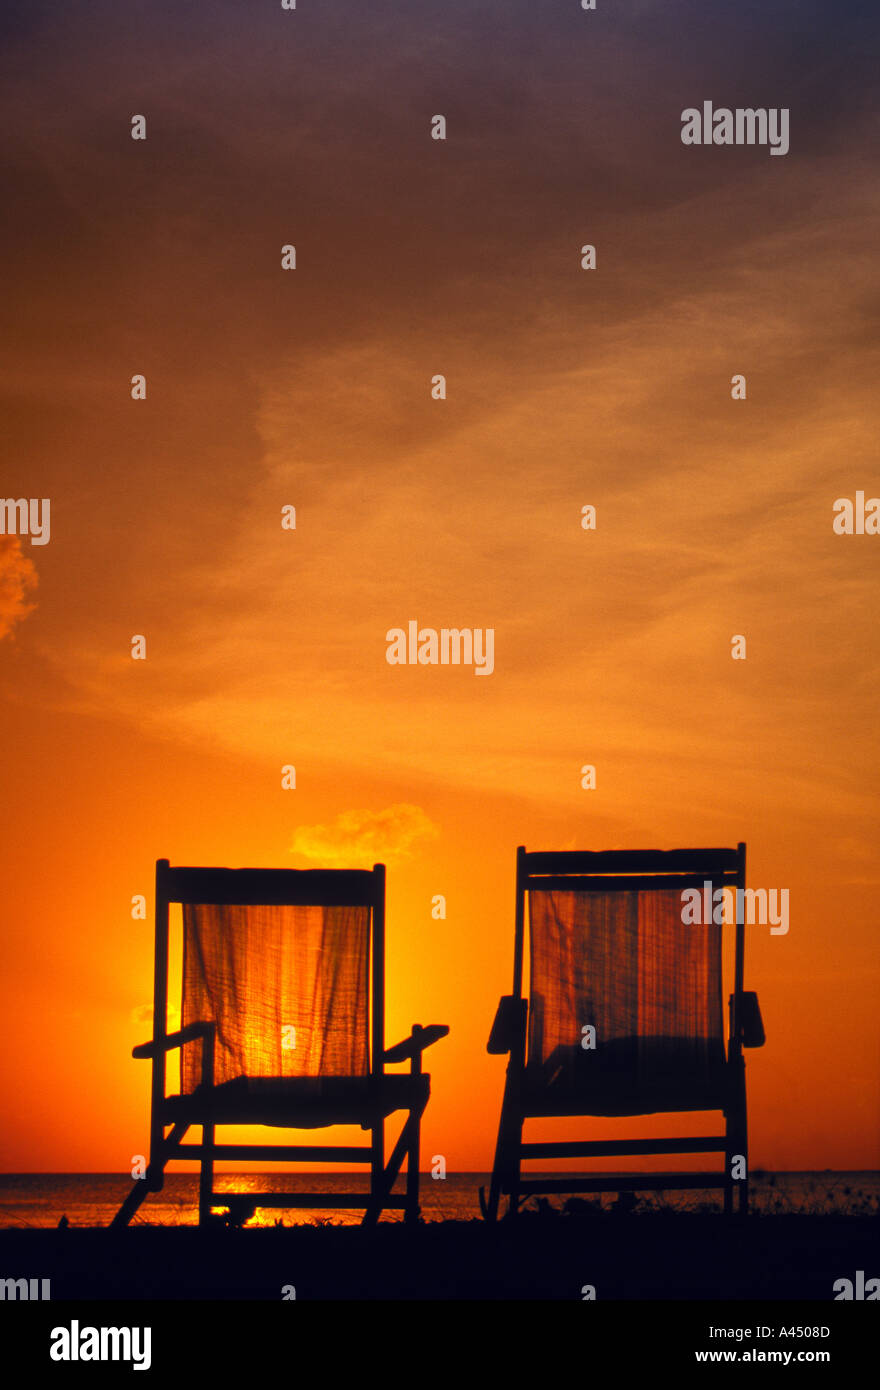 two beach chairs in sunset - Stock Image